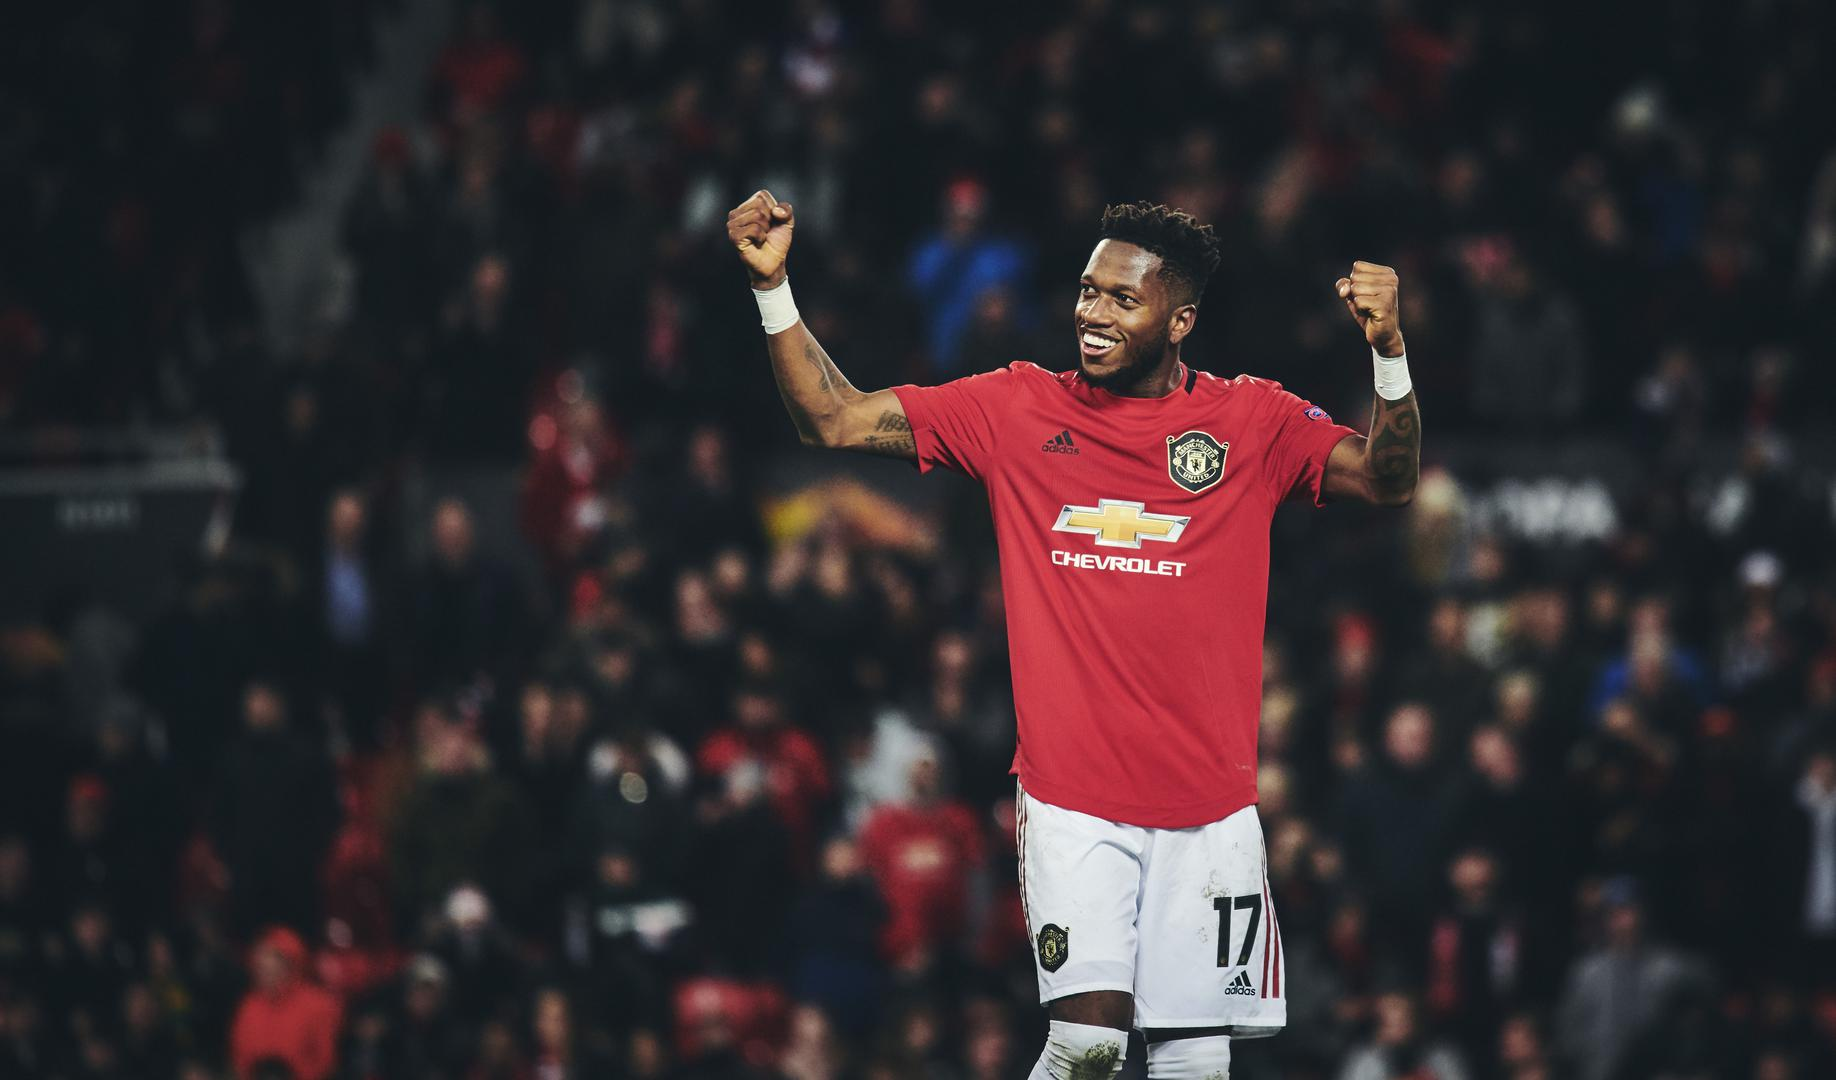 Fred celebrates after Manchester United's 5-0 win over Club Brugge.